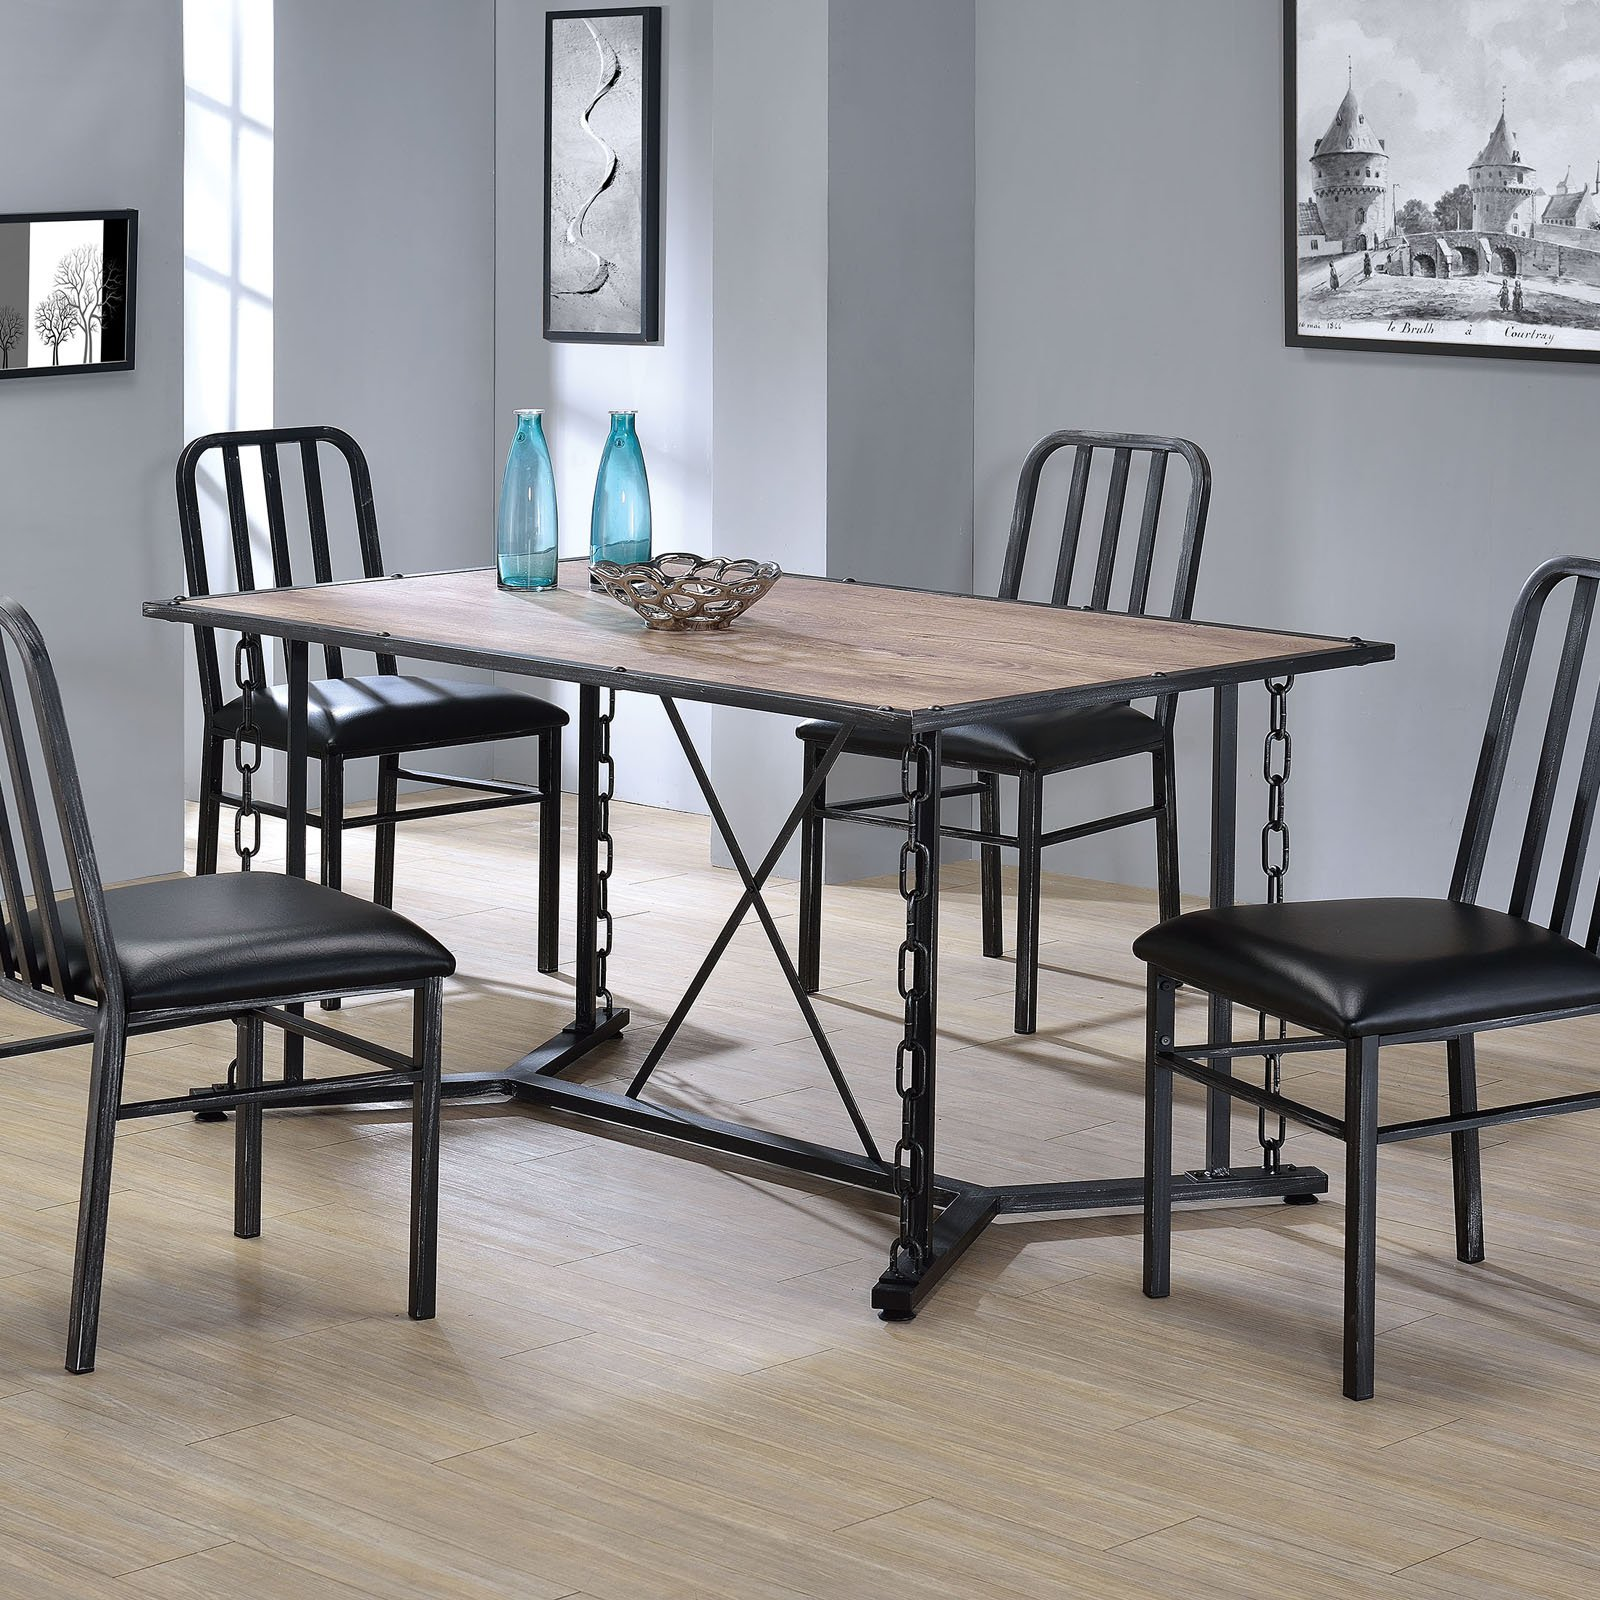 ACME Jodie Dining Table, Rustic Oak and Antique Black